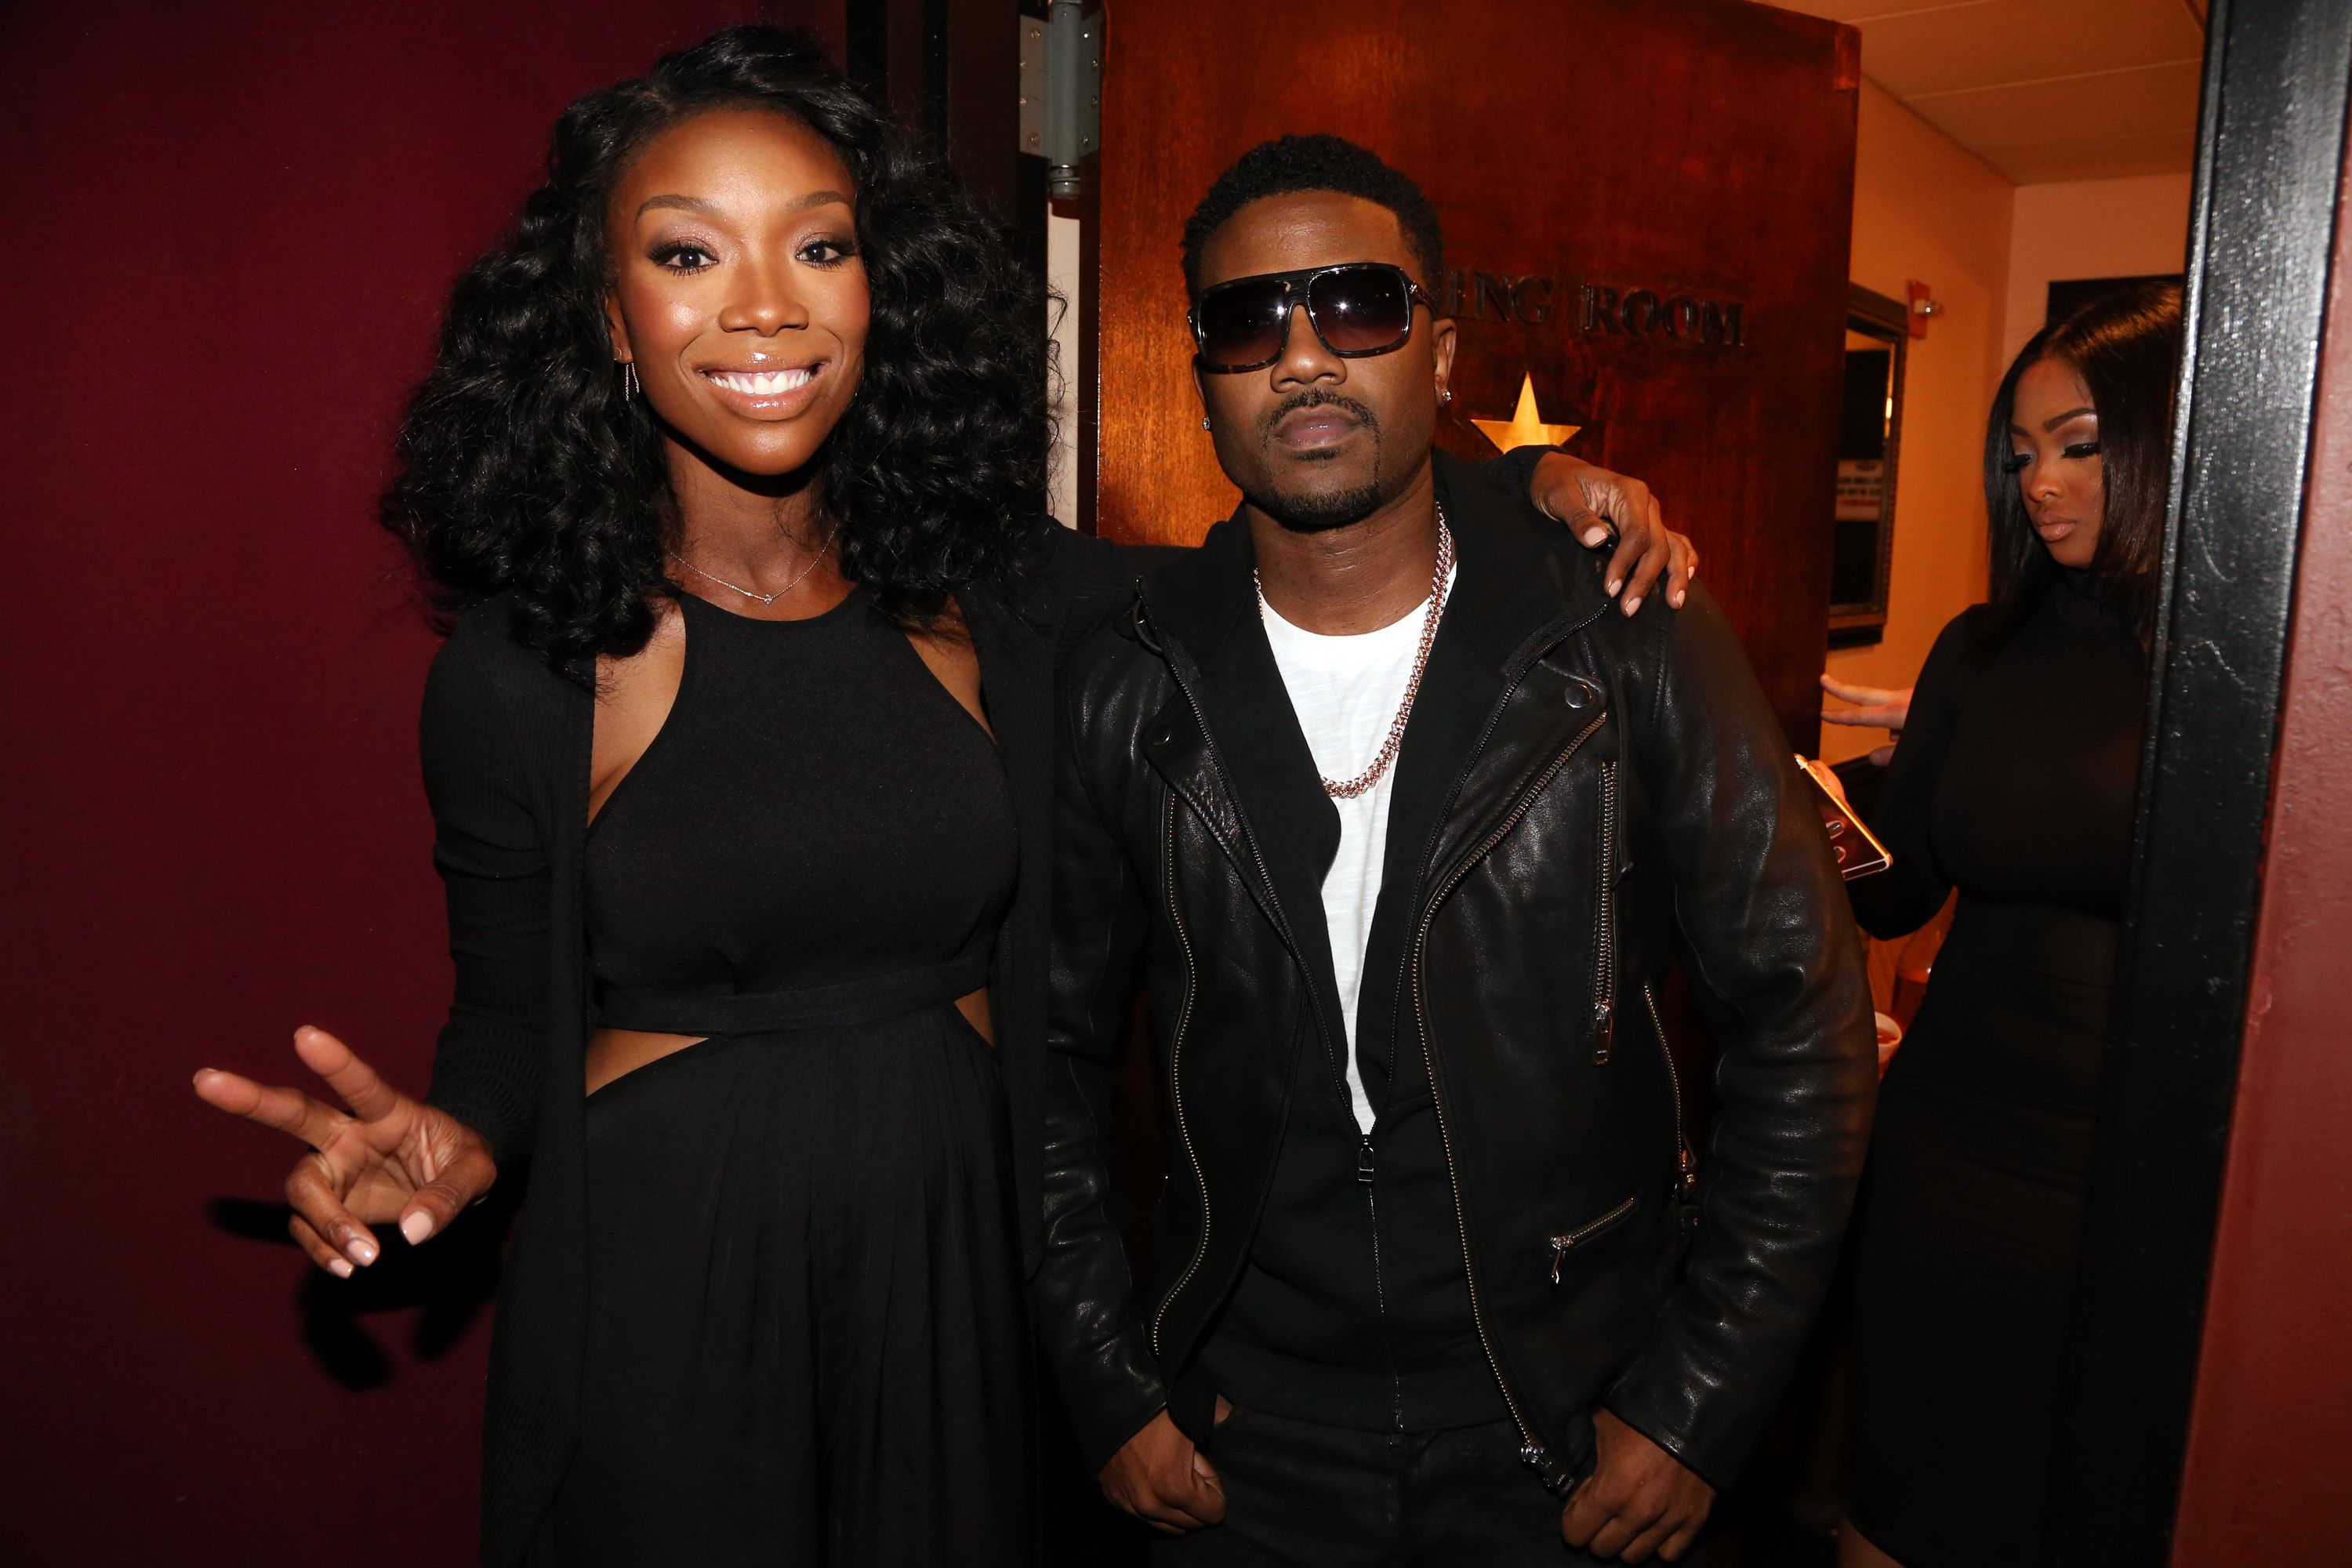 Brandy and Ray J Norwood with Princess Love in the background